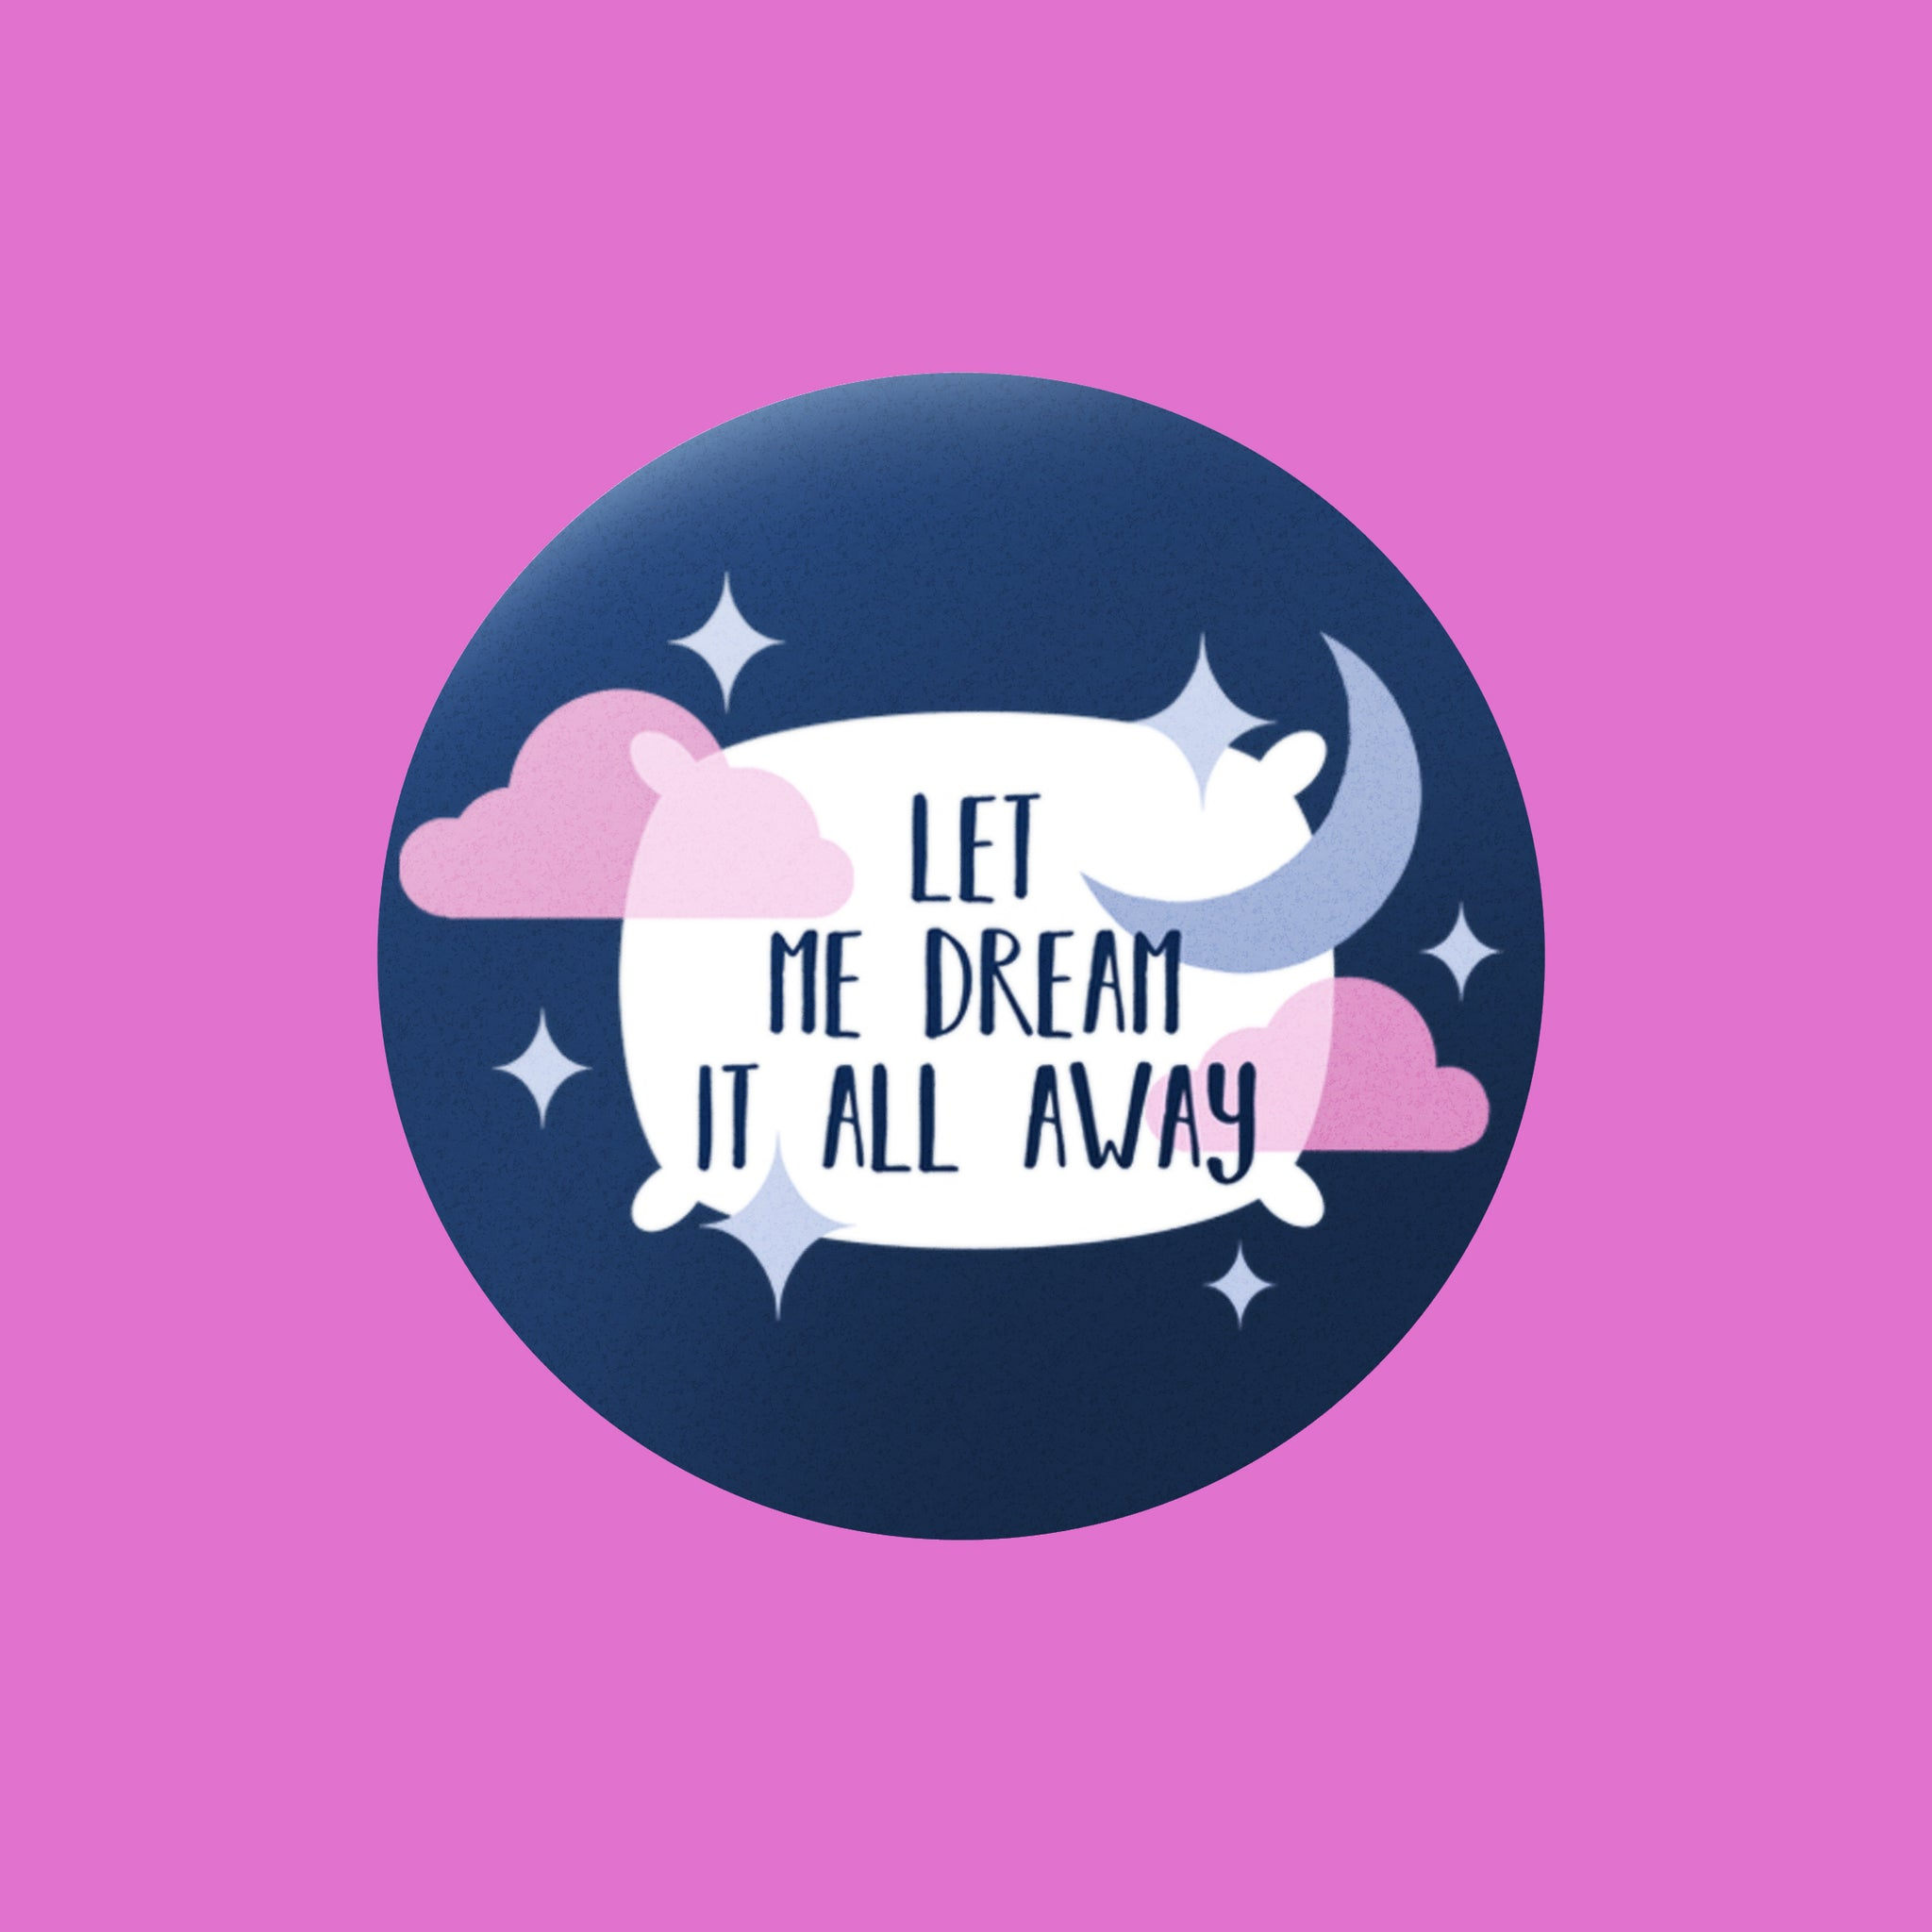 Let me dream it all away Badge